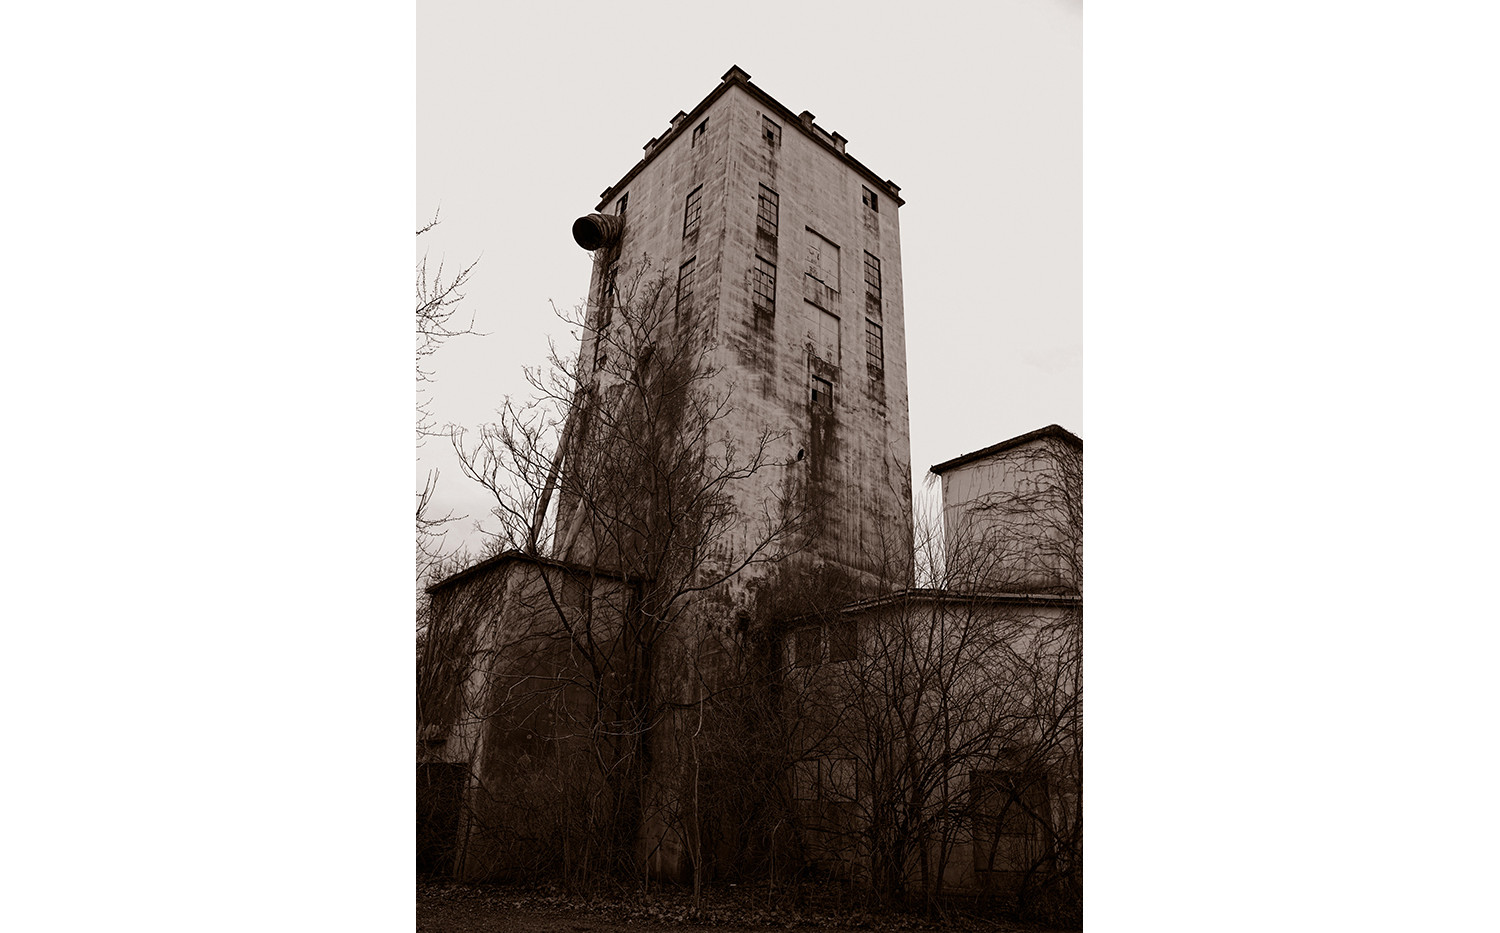 Abandoned Grain Tower, Trotwood Ohio